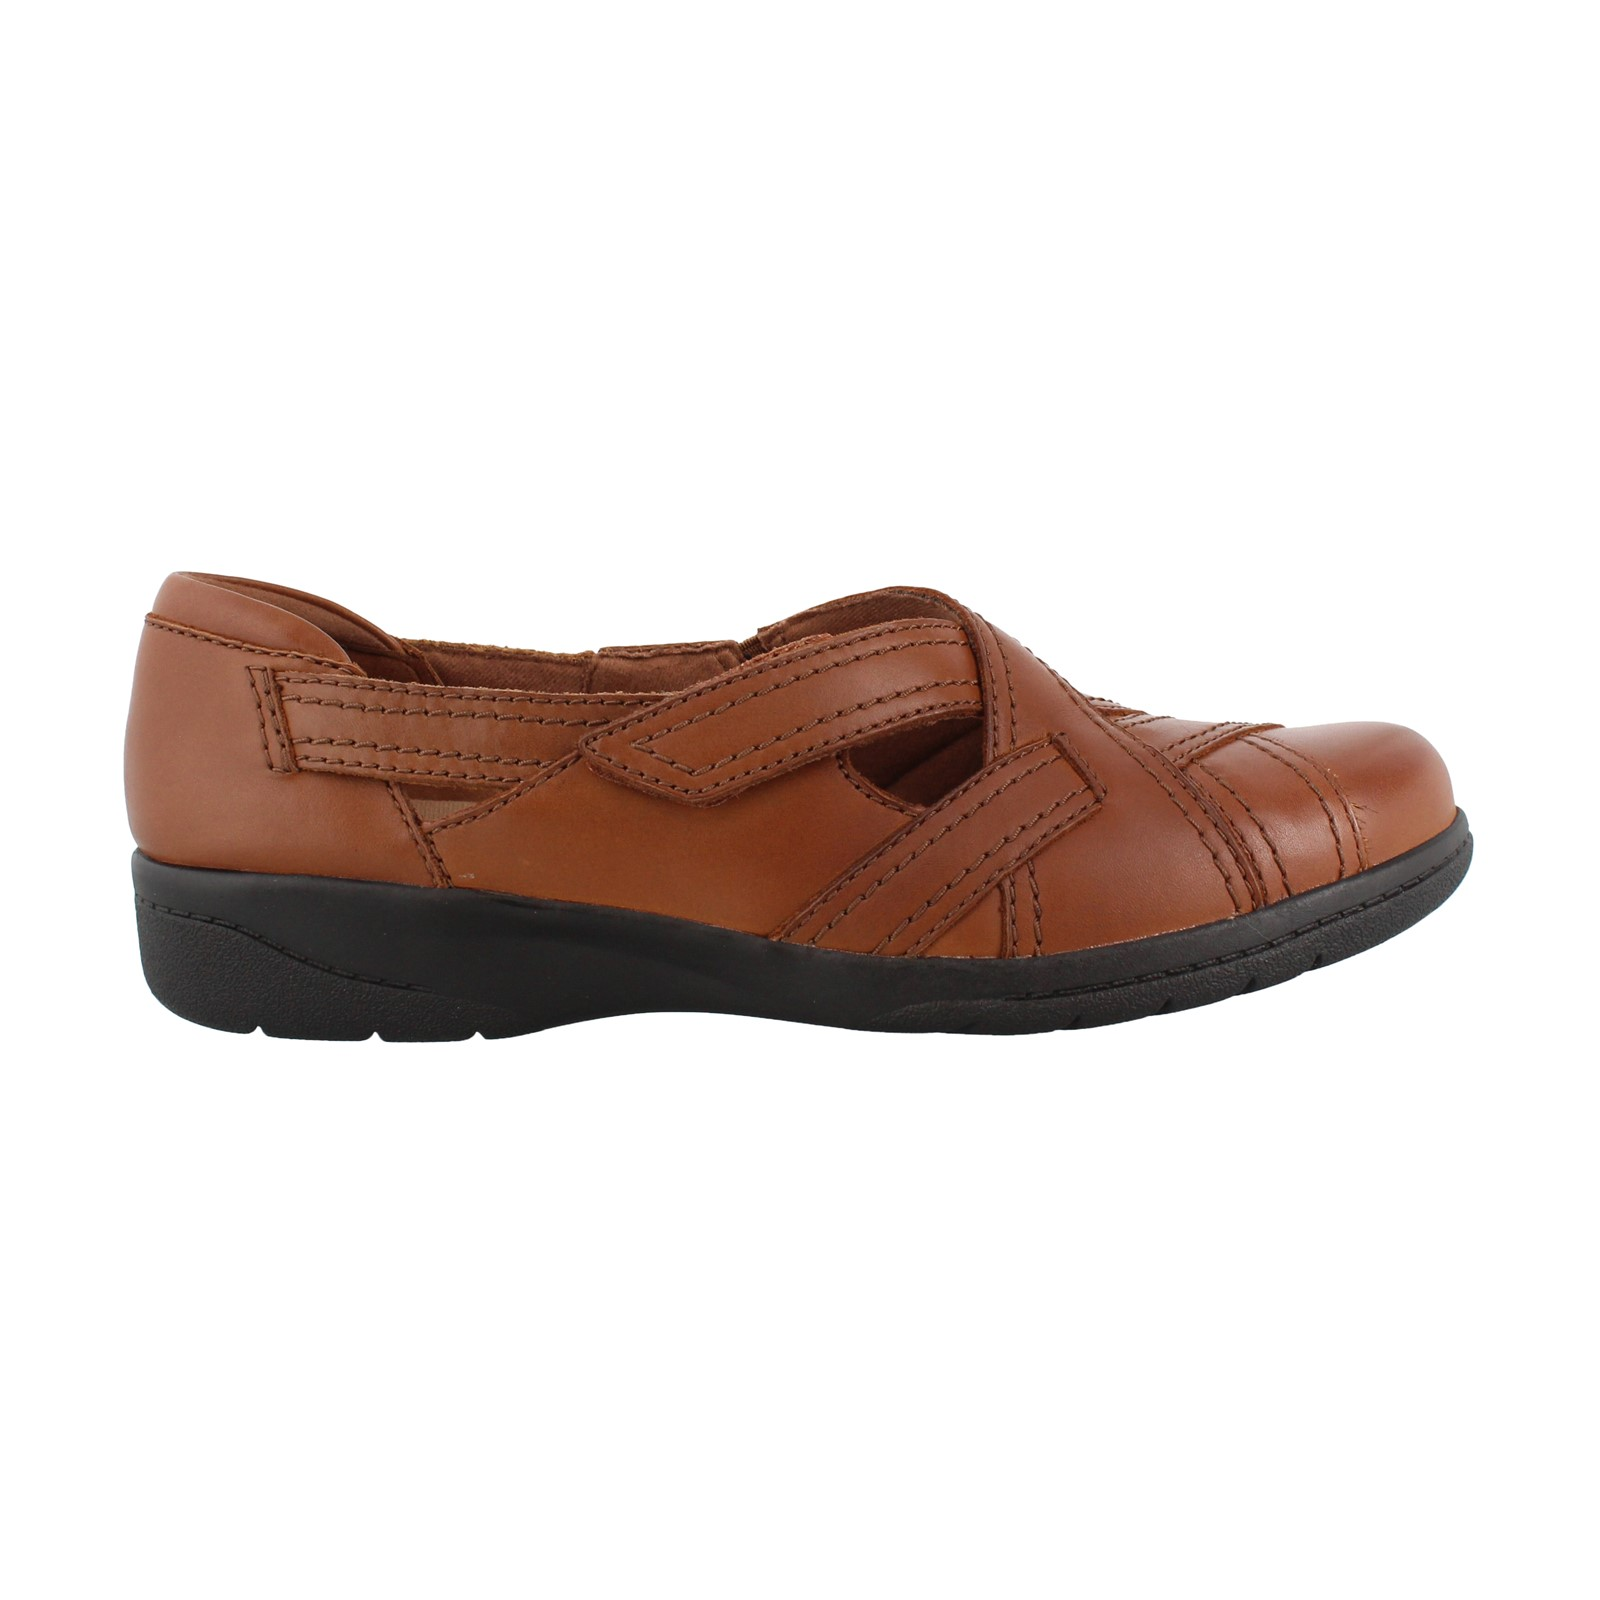 Women's Clarks, Cheyn Wale Slip on Shoes